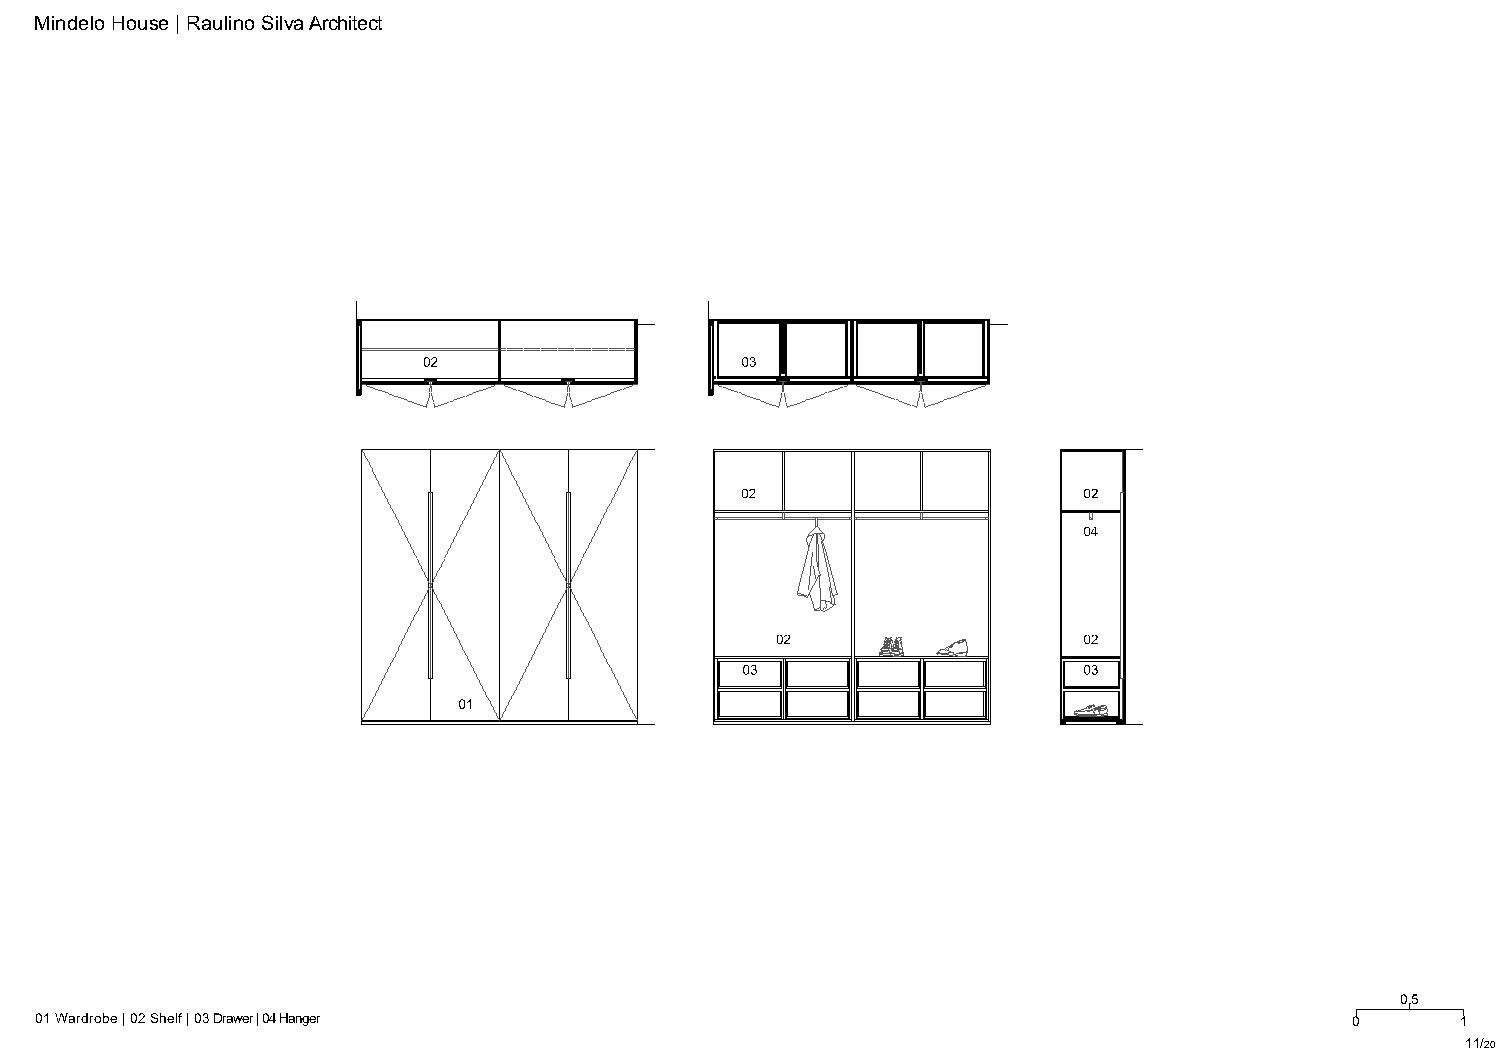 Wardrobe Raulino Silva Architect}